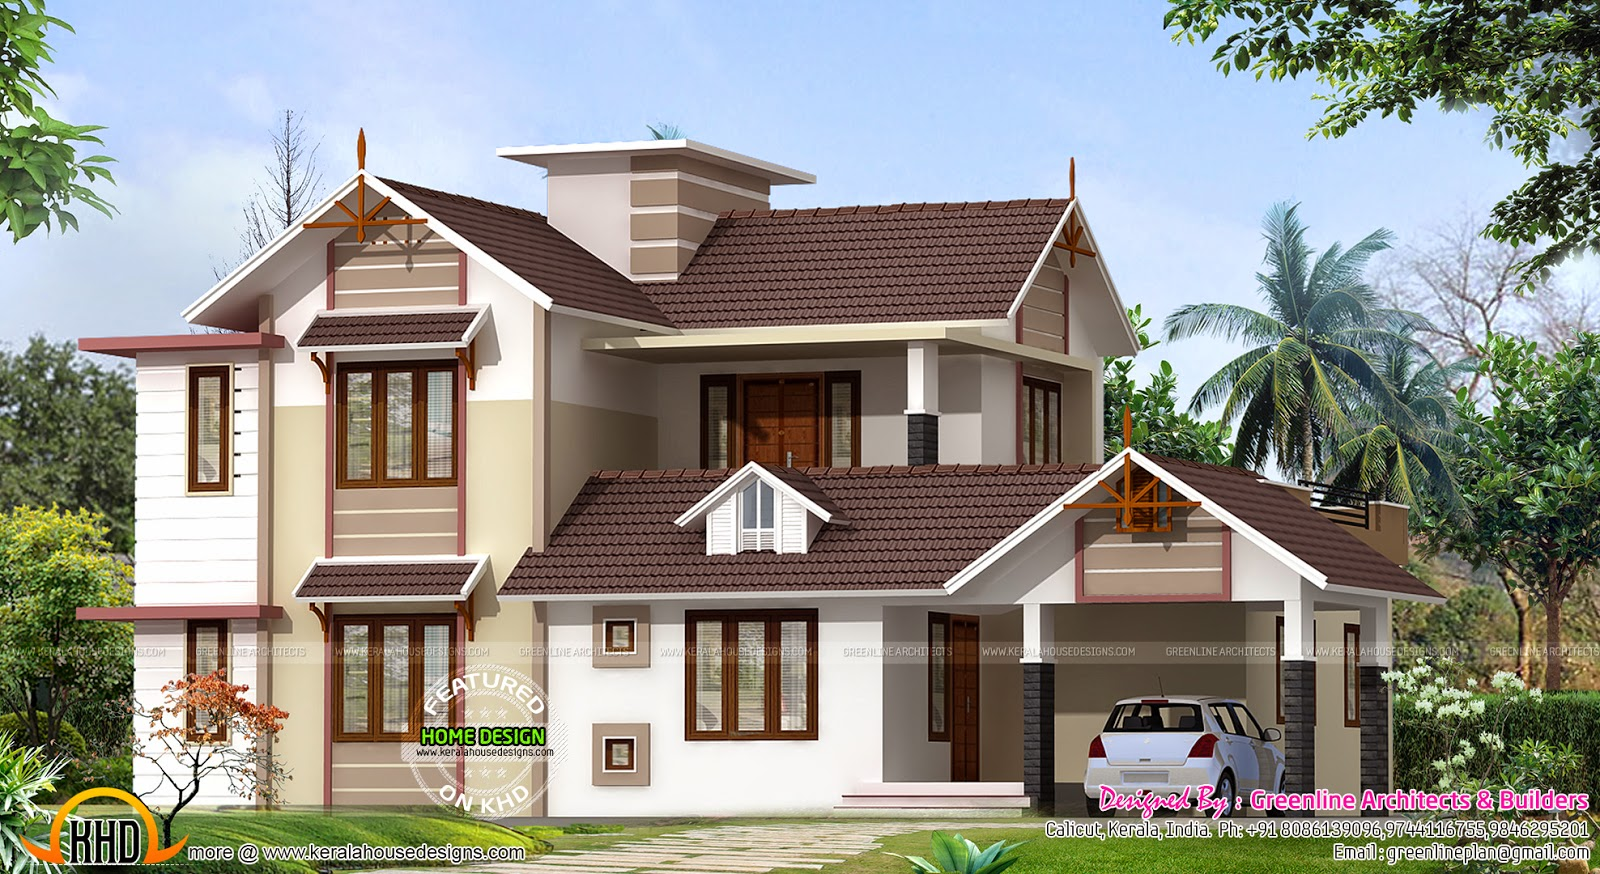 2400 sq ft new house design kerala home design and floor for Kerala new house plans